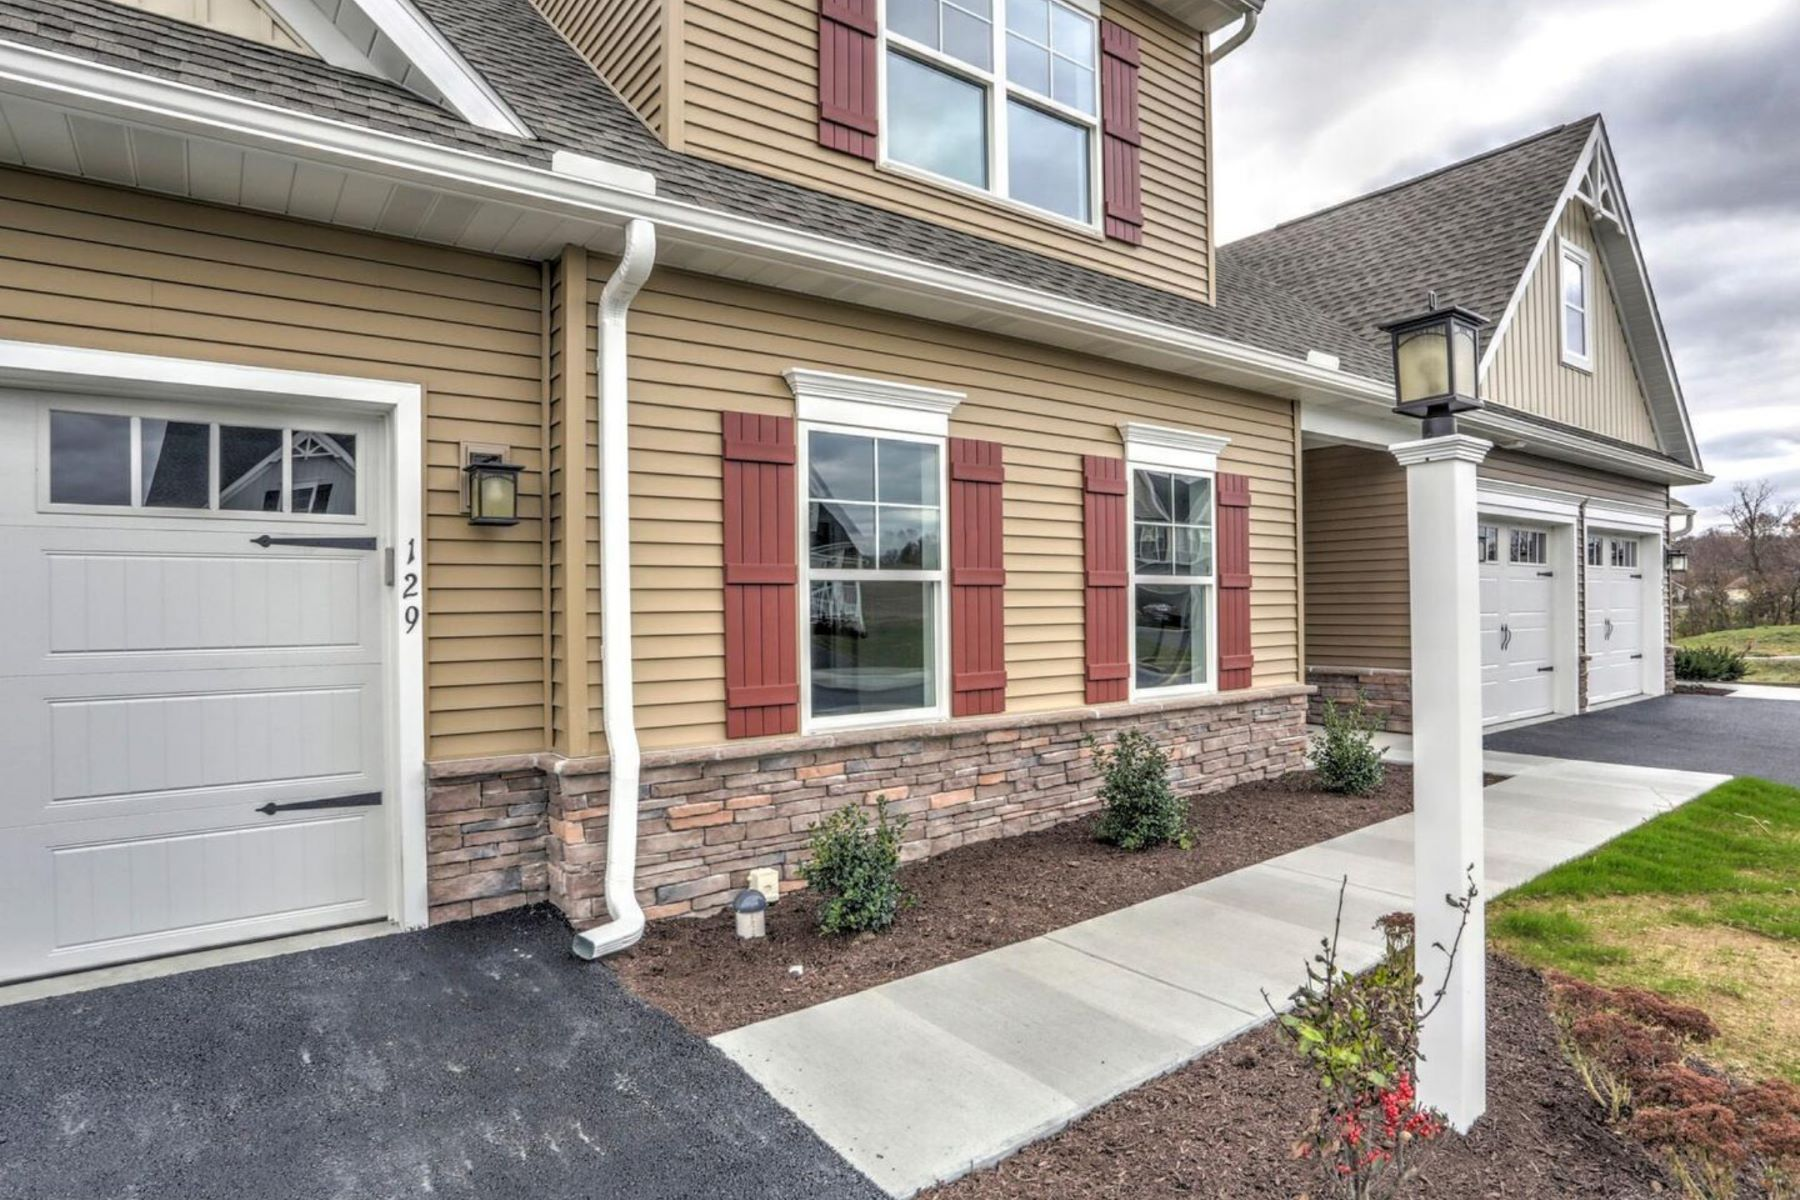 Single Family Homes for Sale at 129 Canvasback Lane Lot 14 Elizabethtown, Pennsylvania 17022 United States